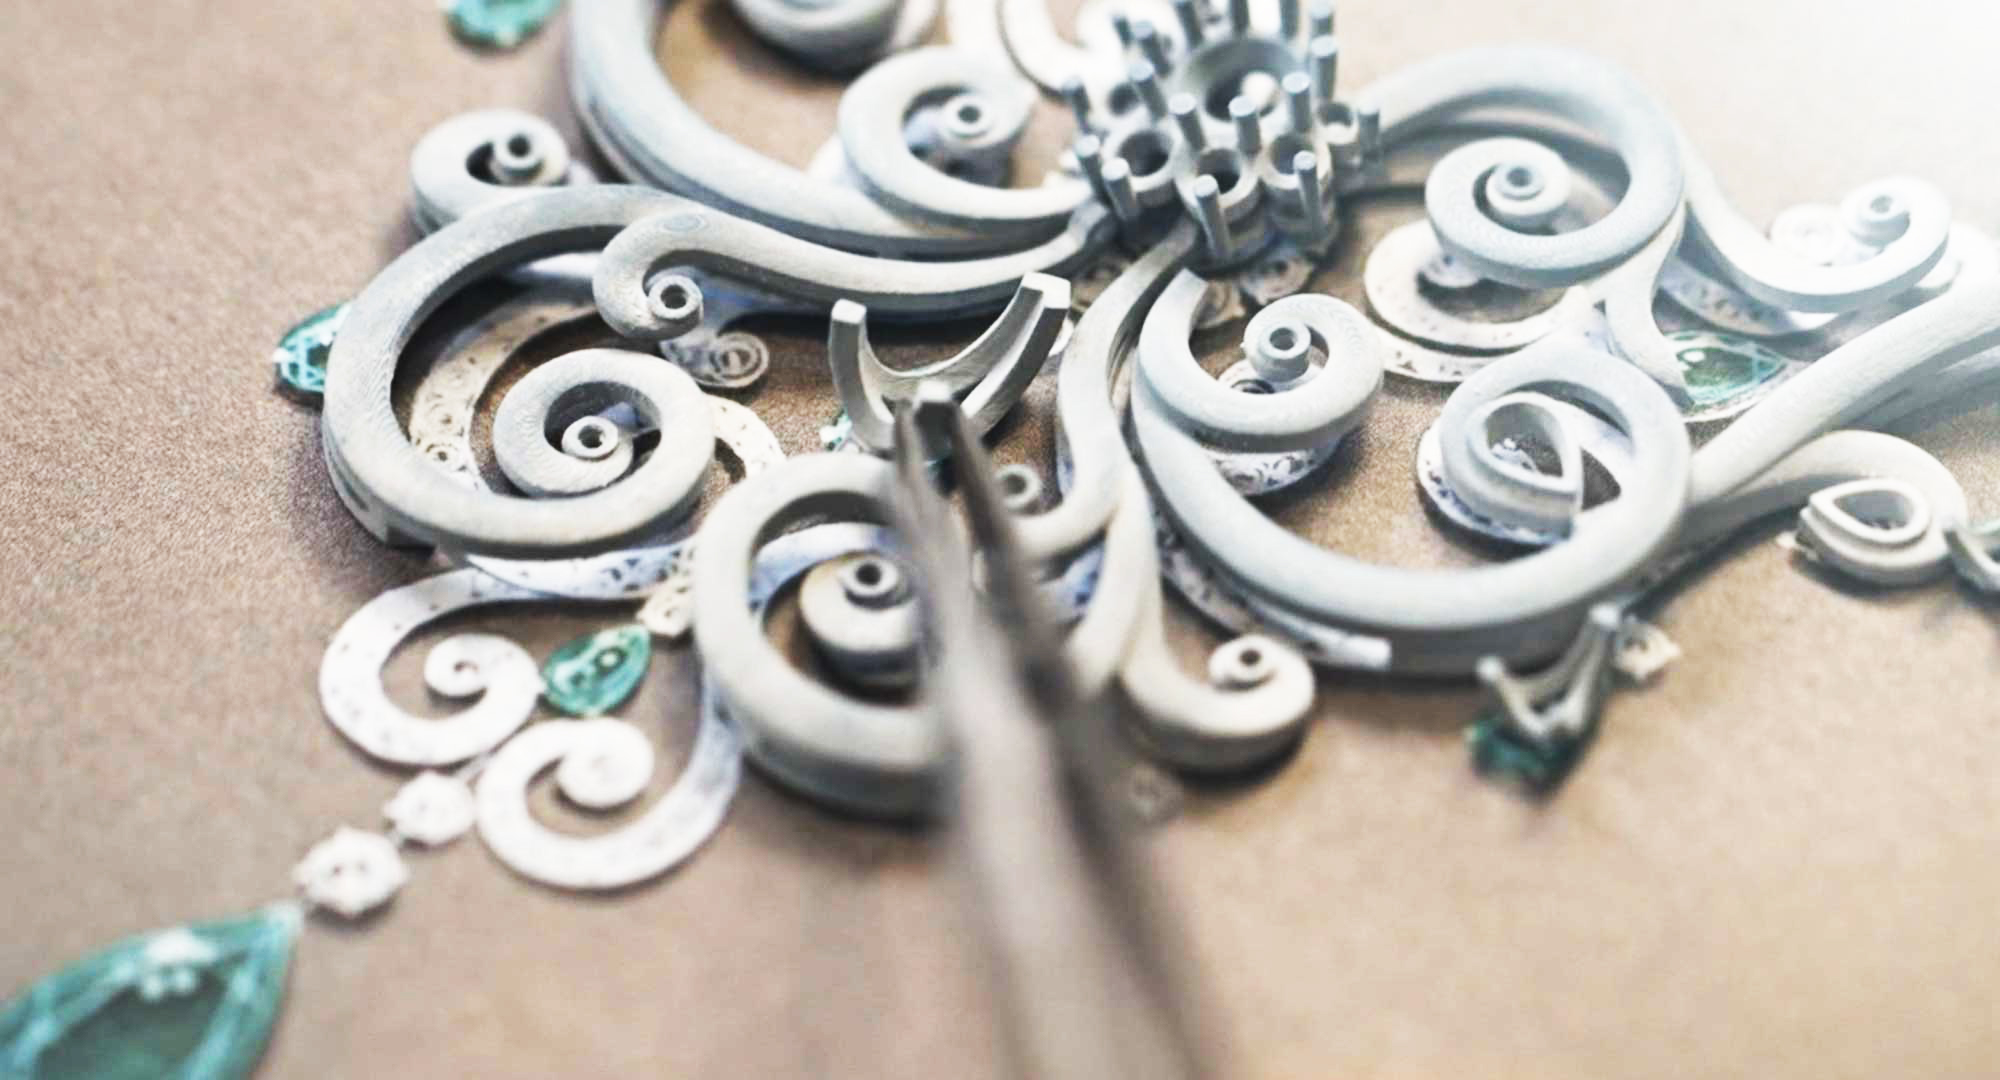 Close up view of personalized Faberge jewellery being made